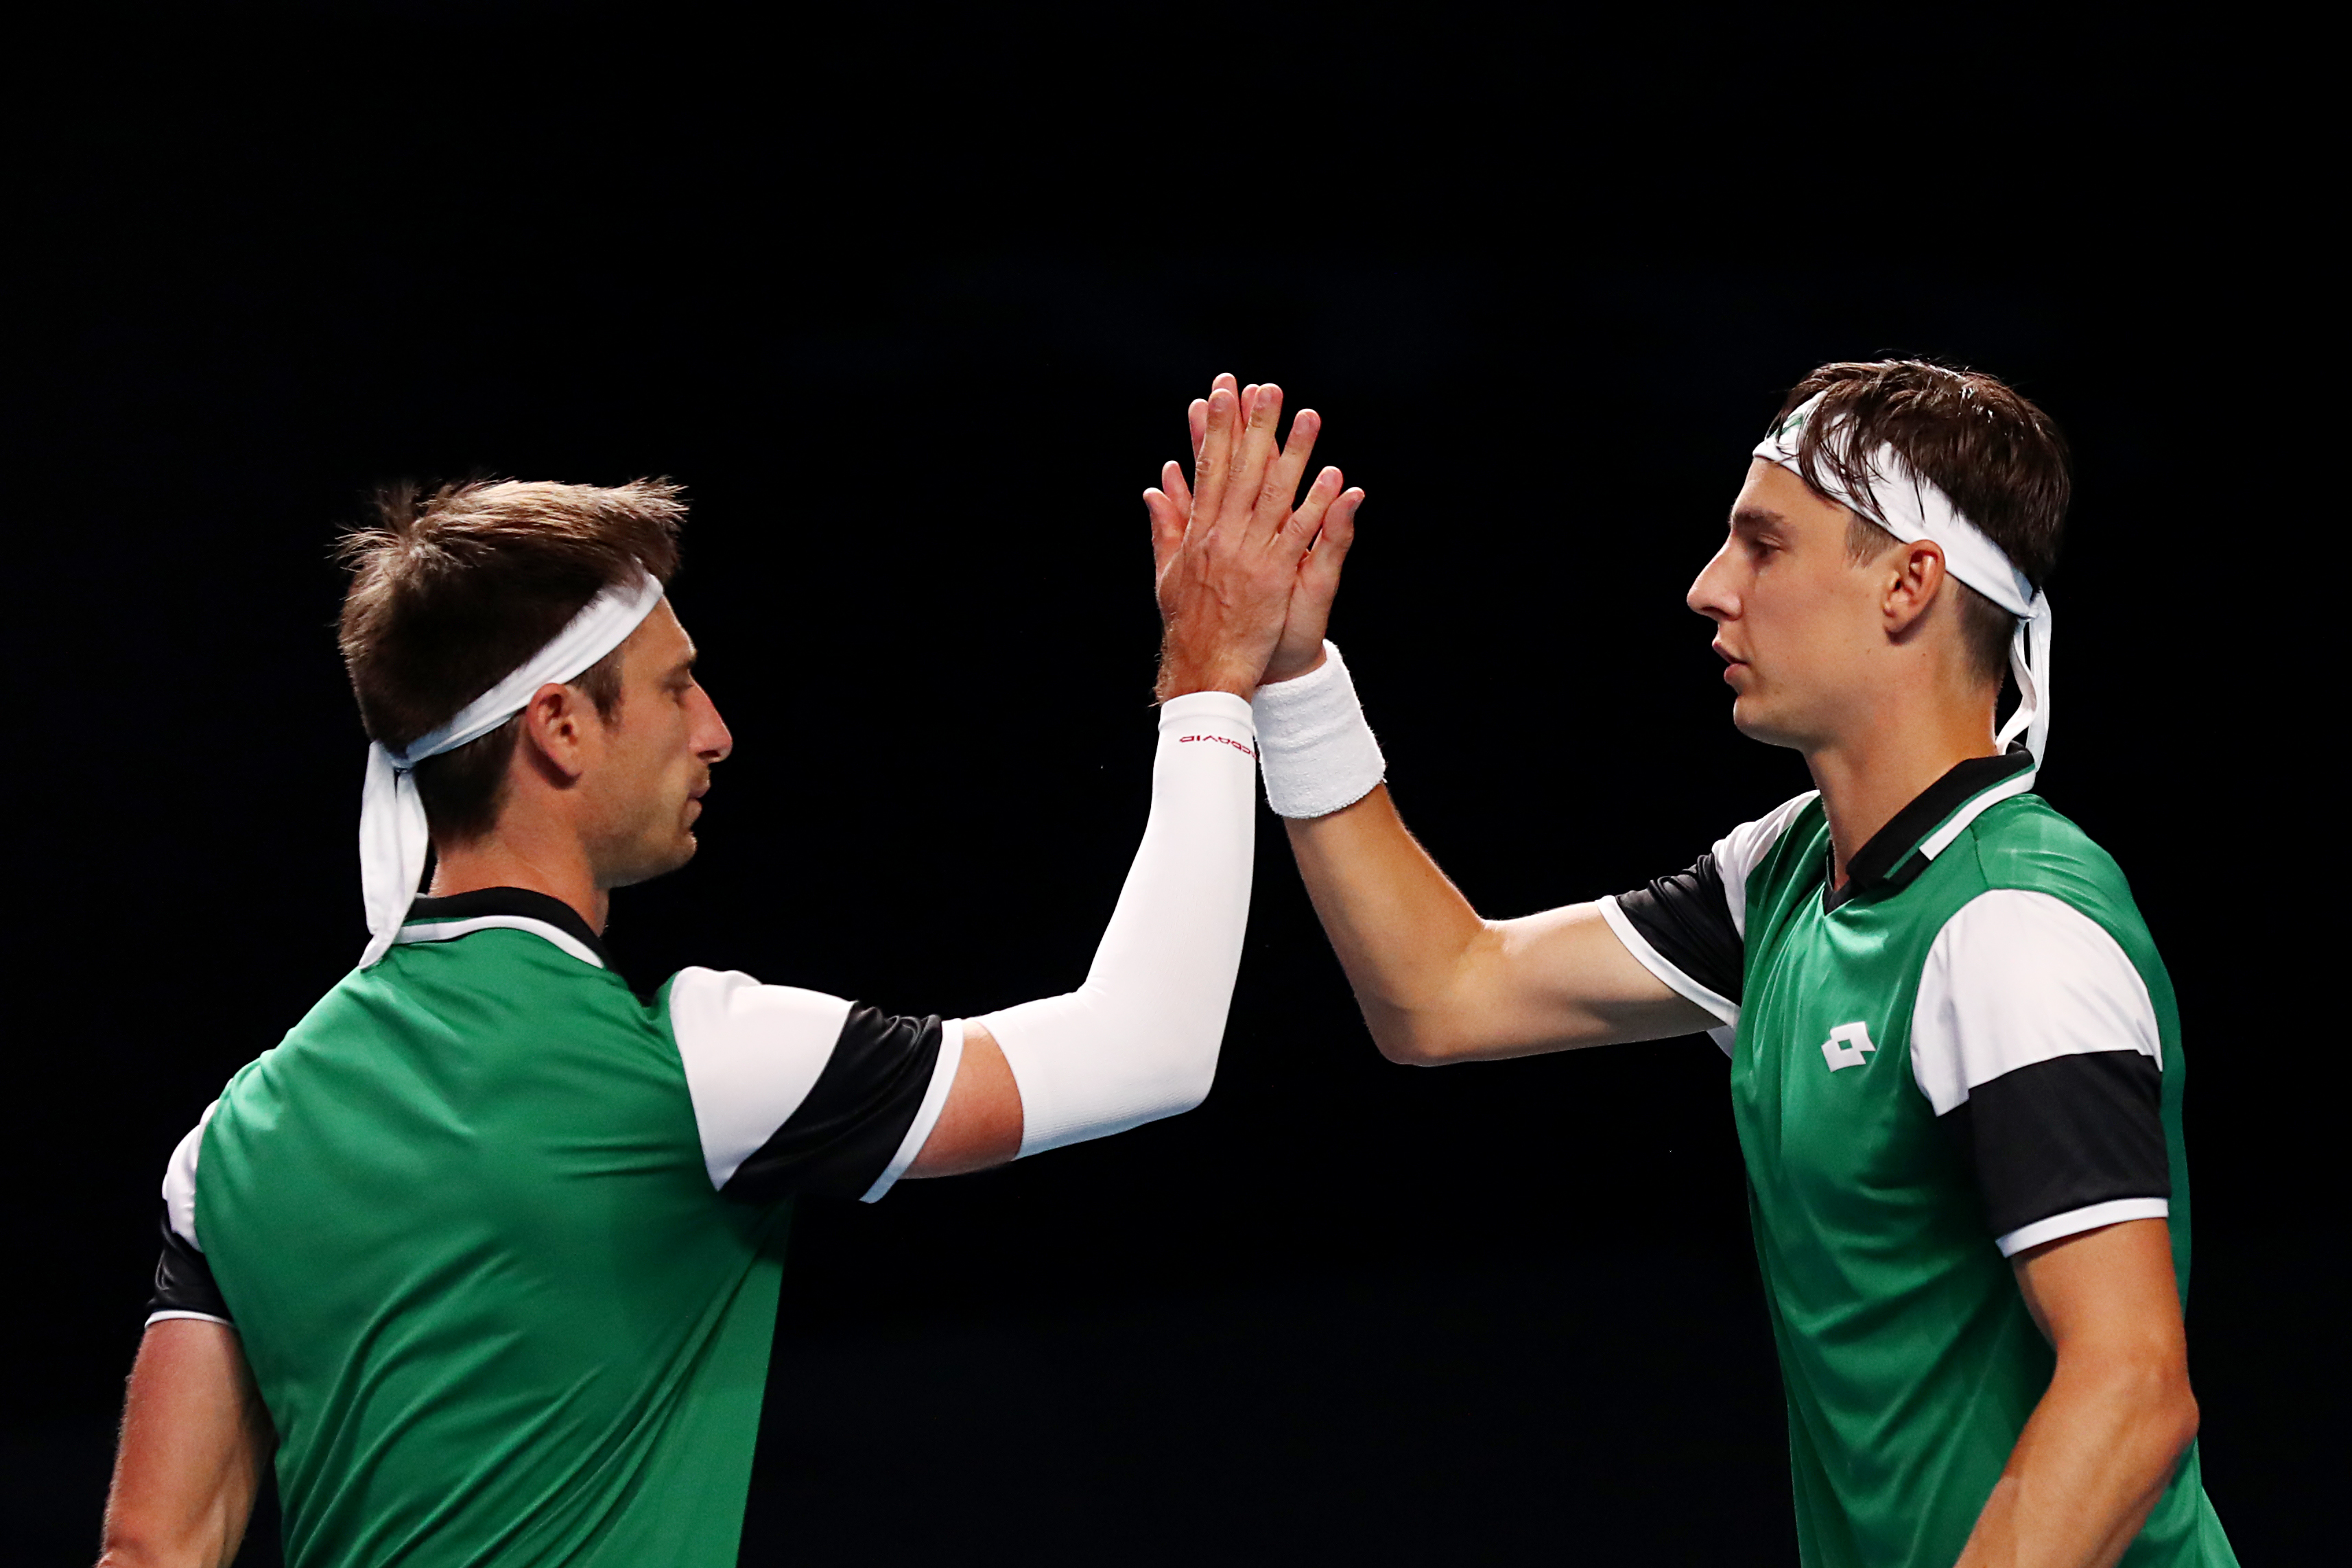 STO Dbls Top seeds Gillé & Vliegen deliver sterling performance to reach QF!